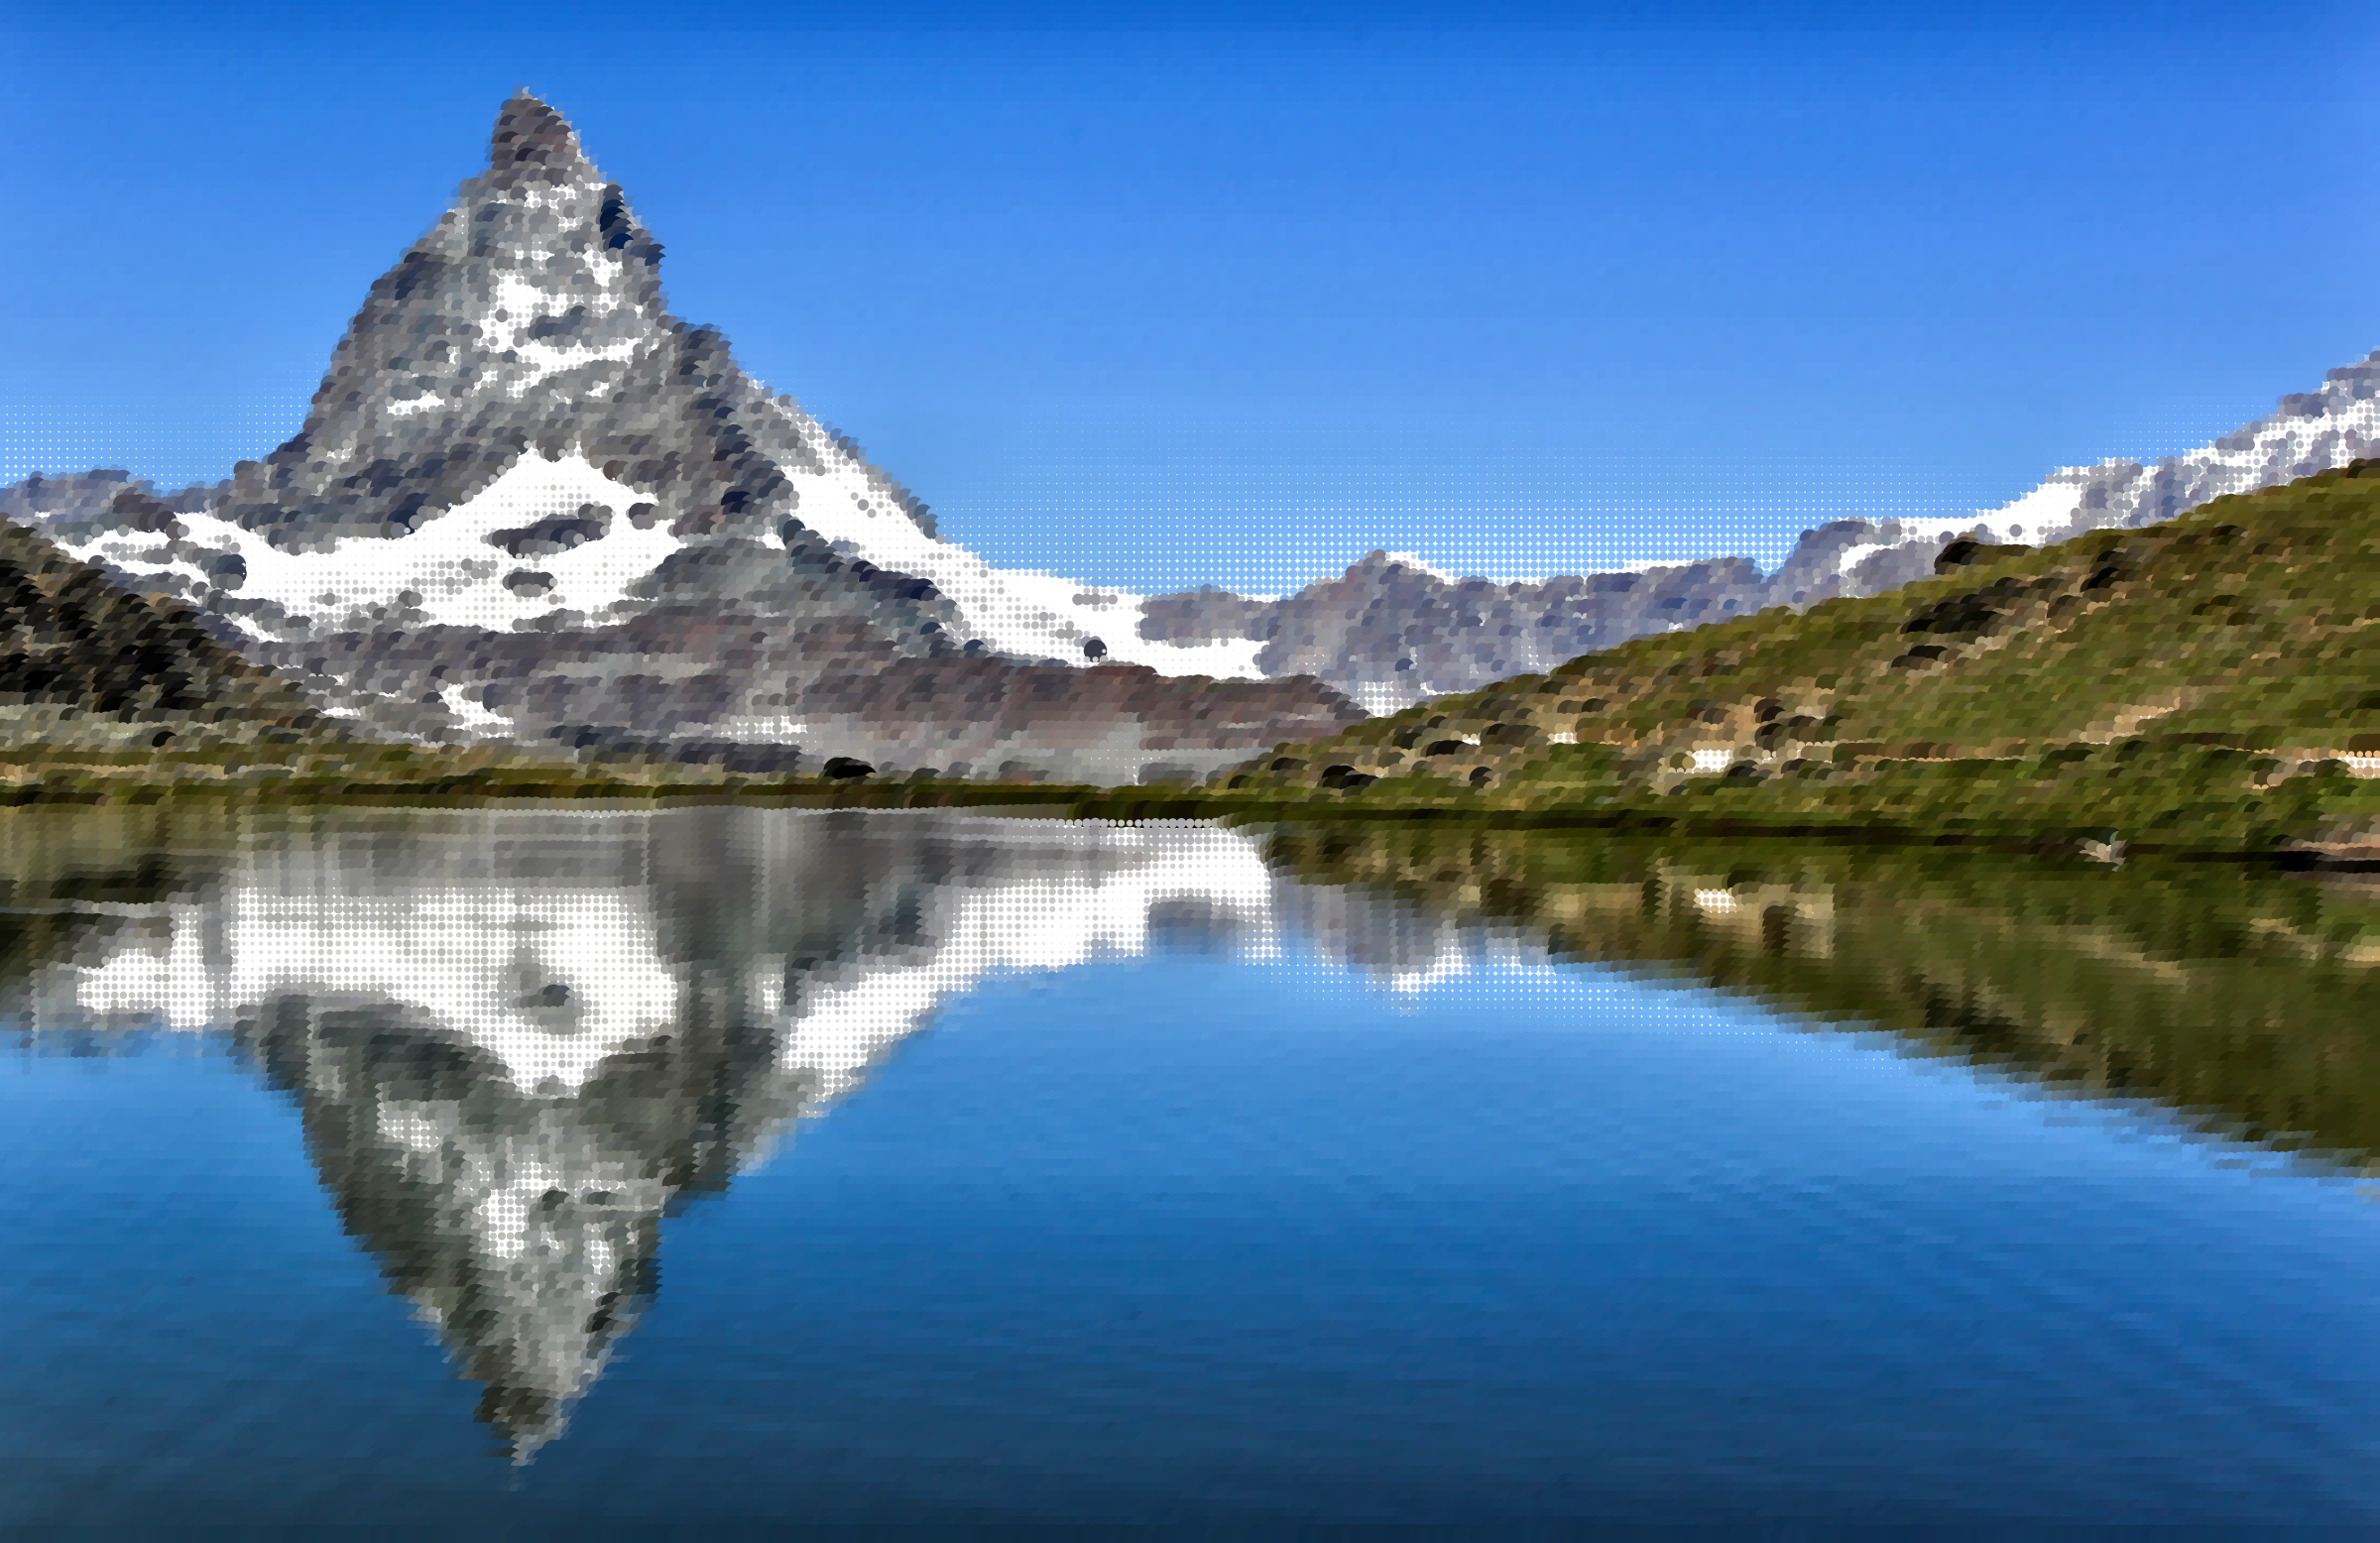 Surreal swiss mountain lake. Clipart mountains water